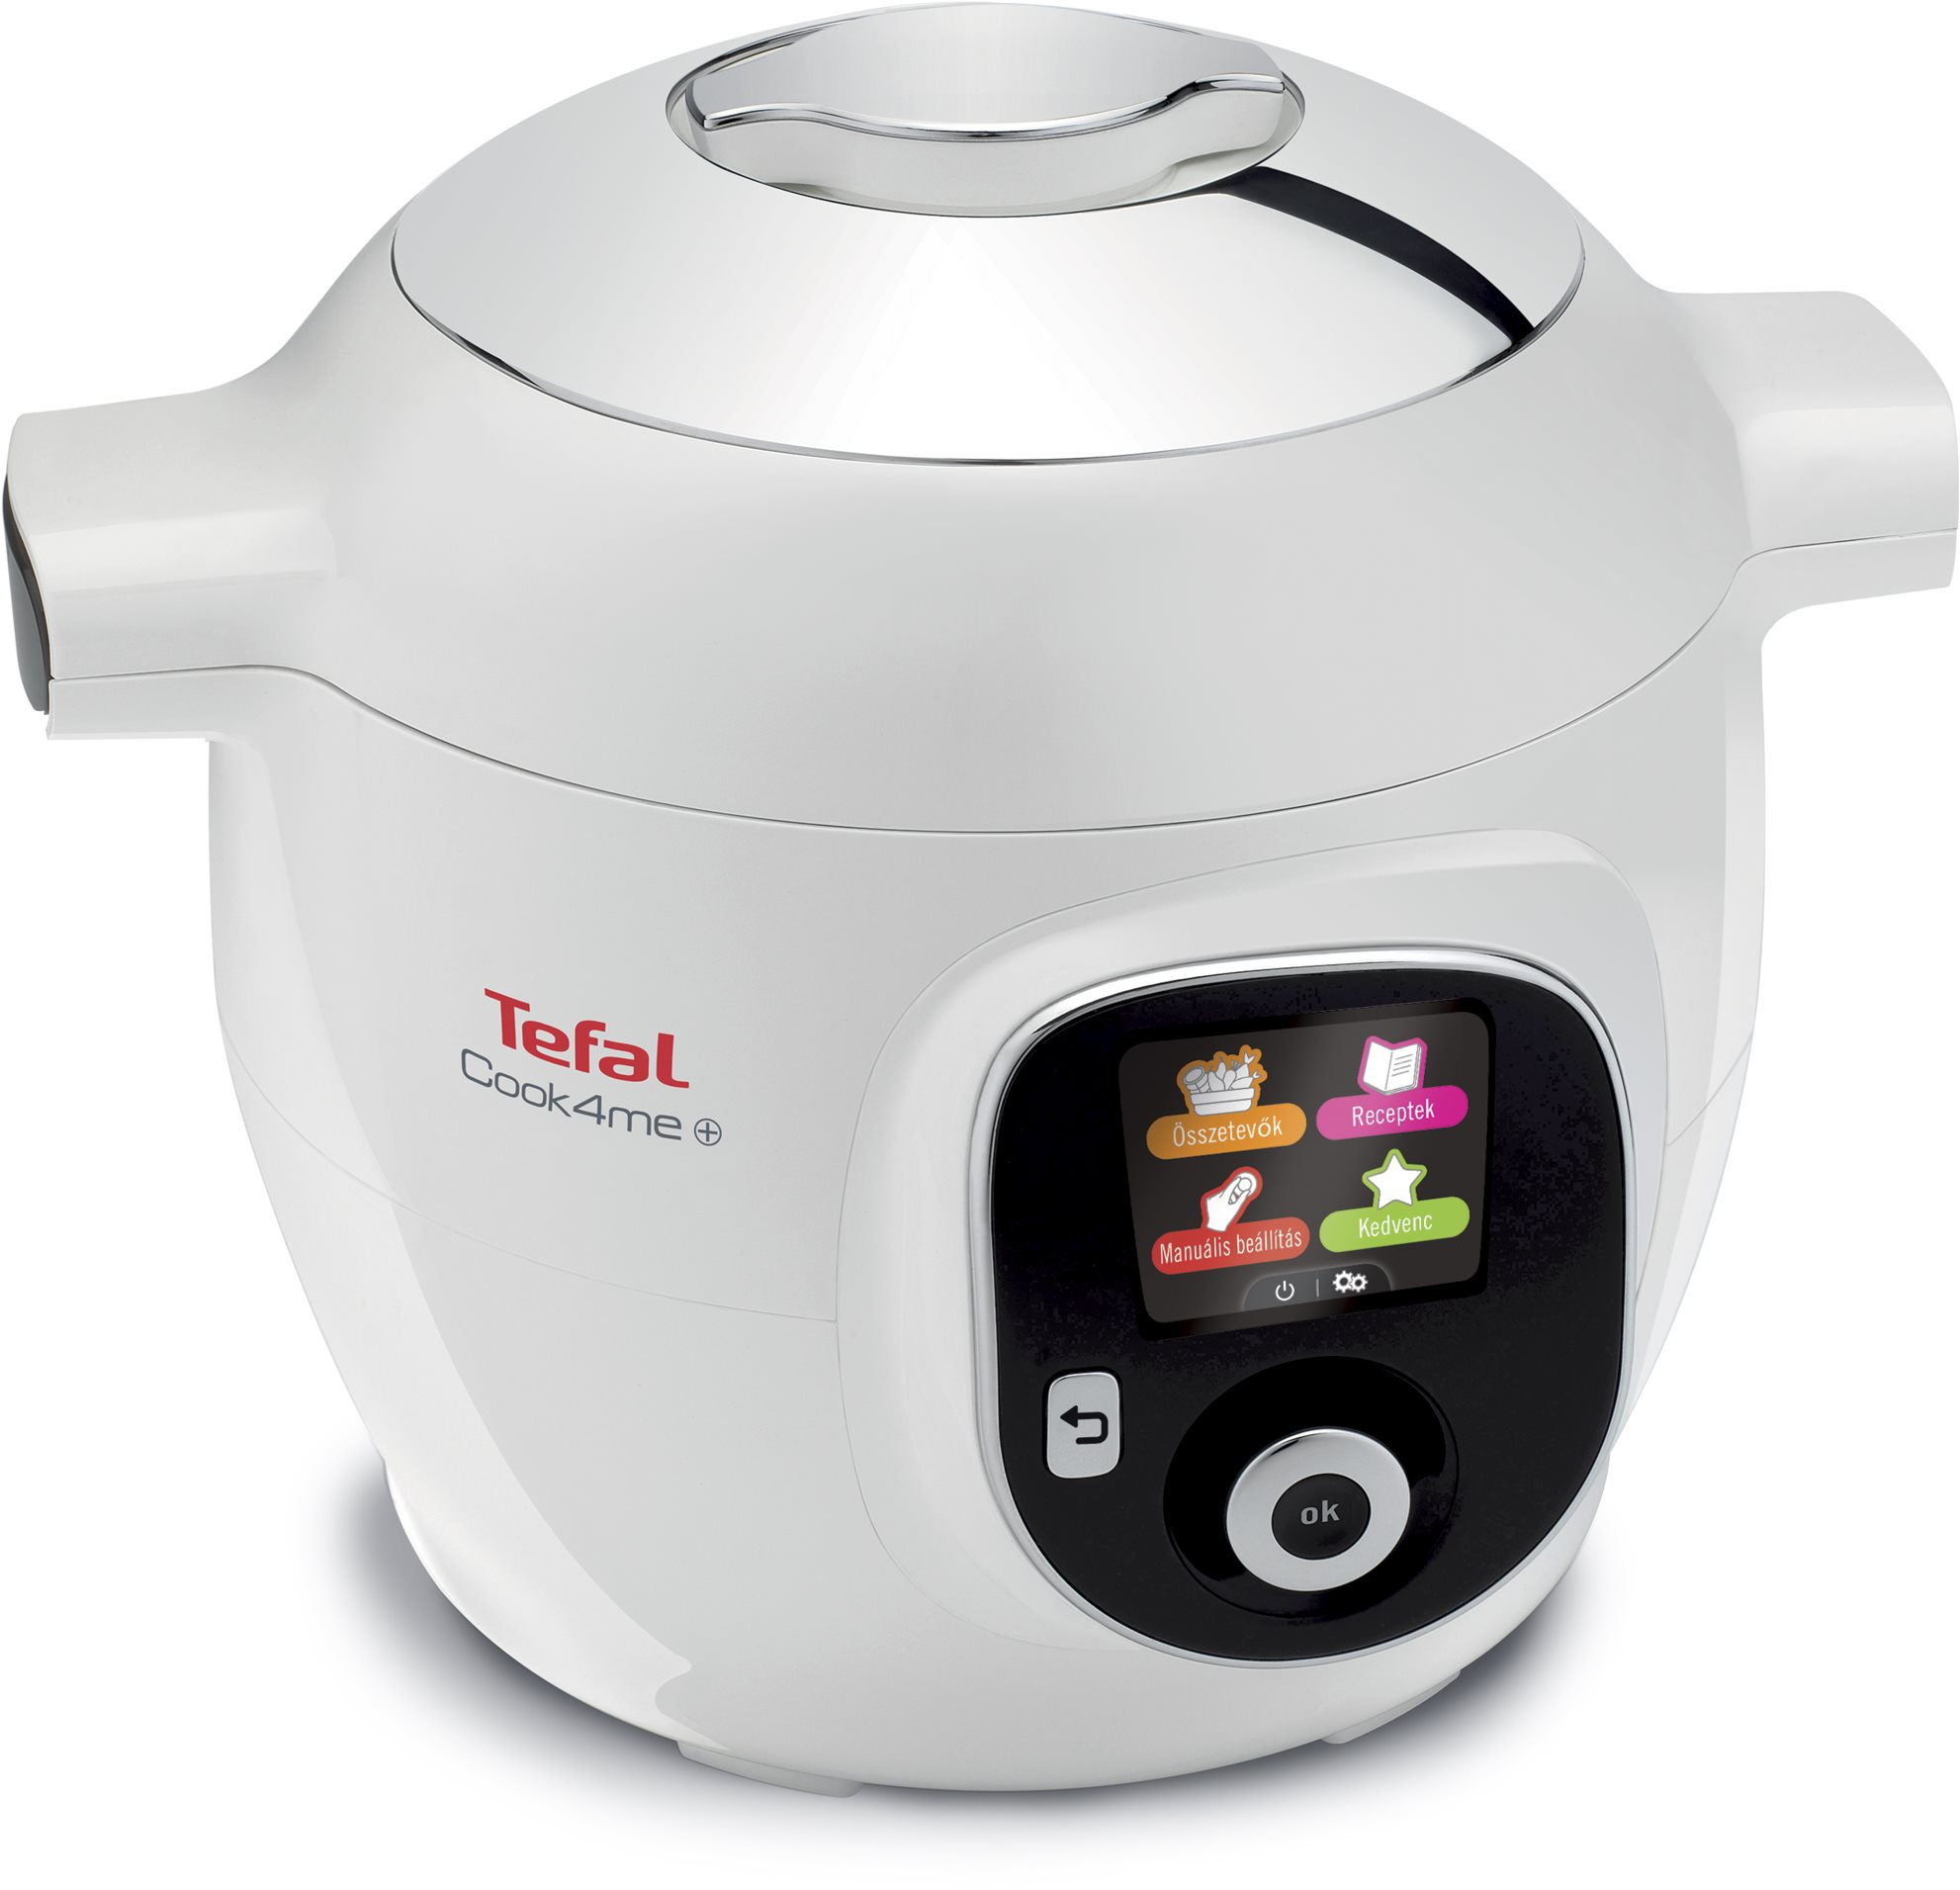 Tefal CY851130 Cook4me+ white